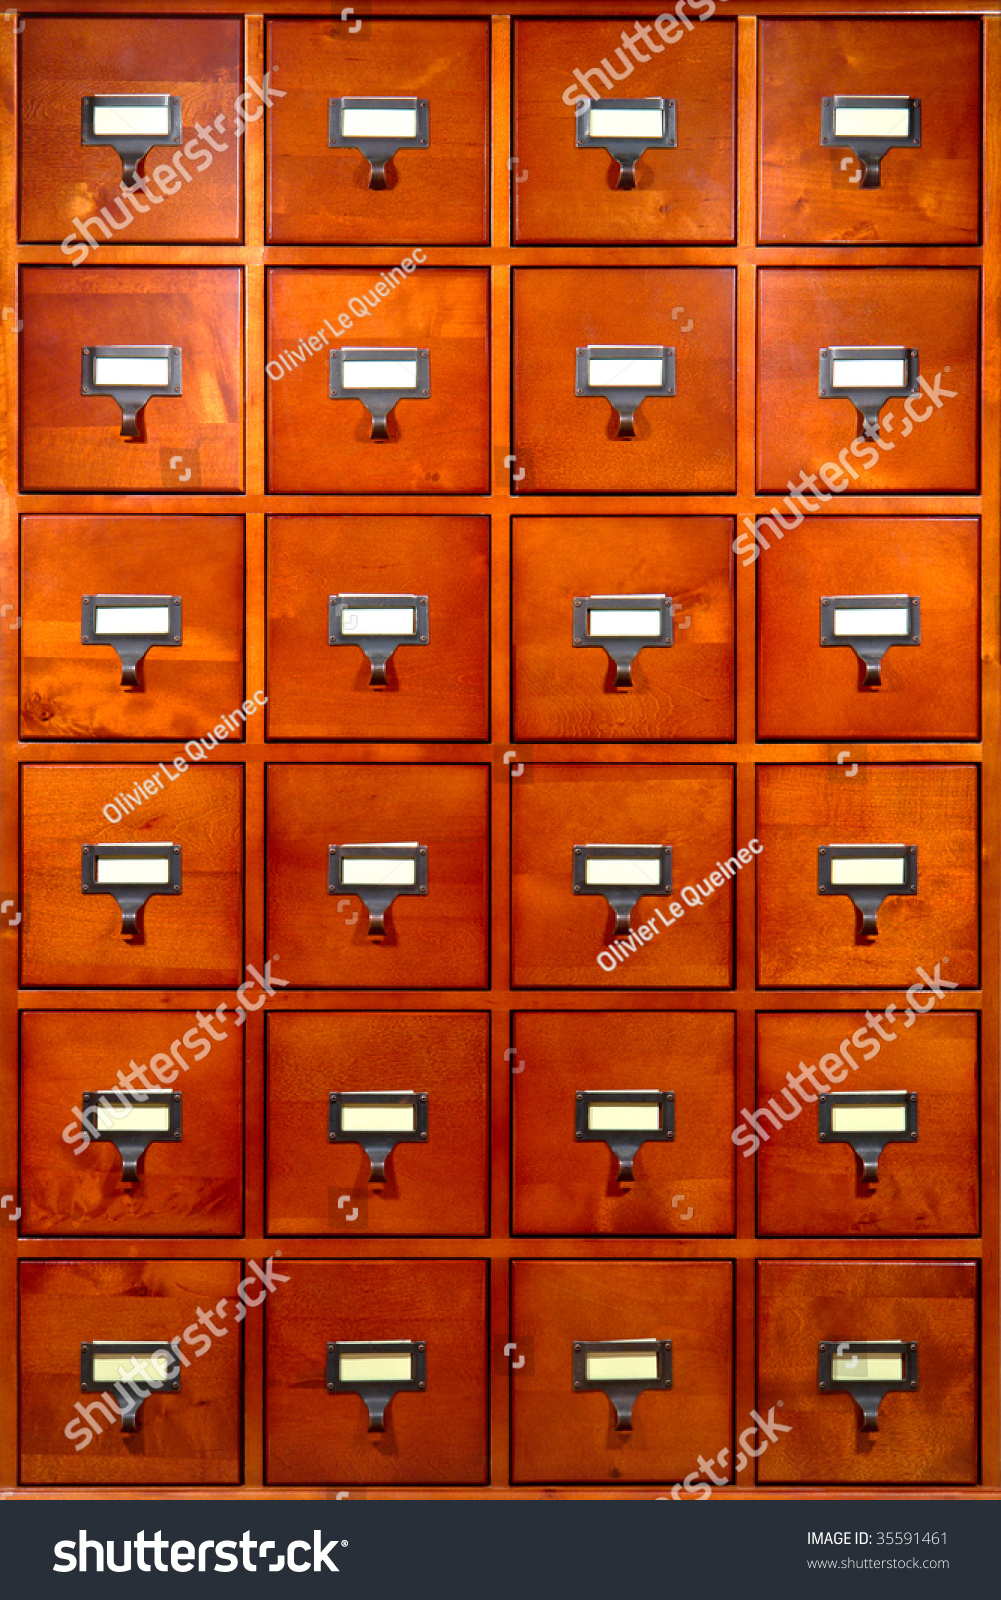 Old Fashioned Library Card Filing Storage Stock Photo